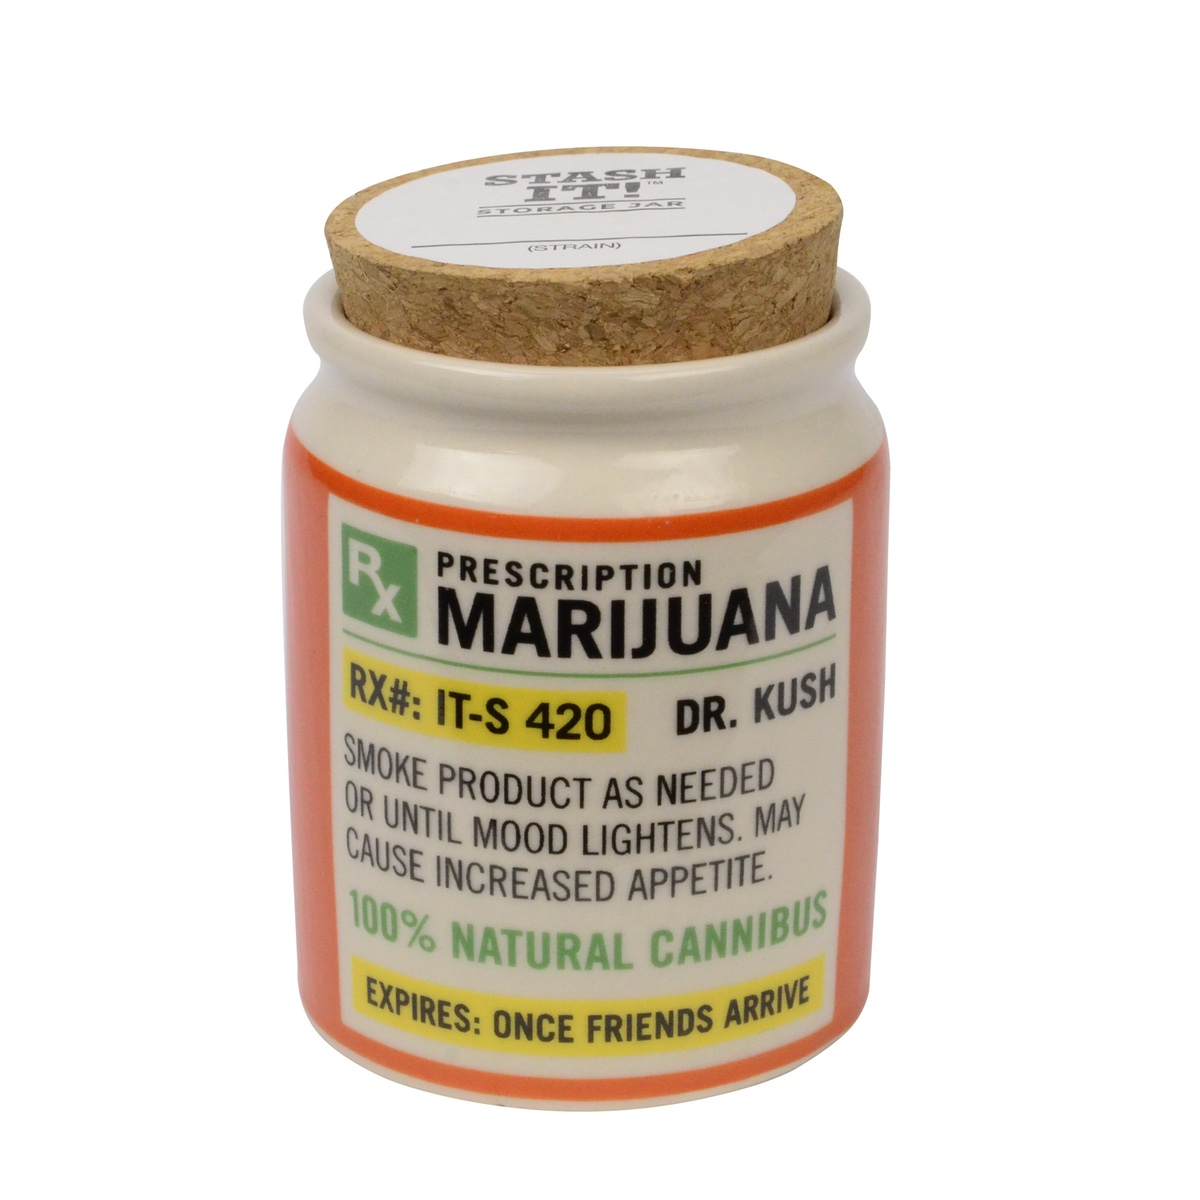 Rx prescription marijuana pill bottle container weed stash jar image is loading rx prescription marijuana pill bottle container weed stash negle Choice Image